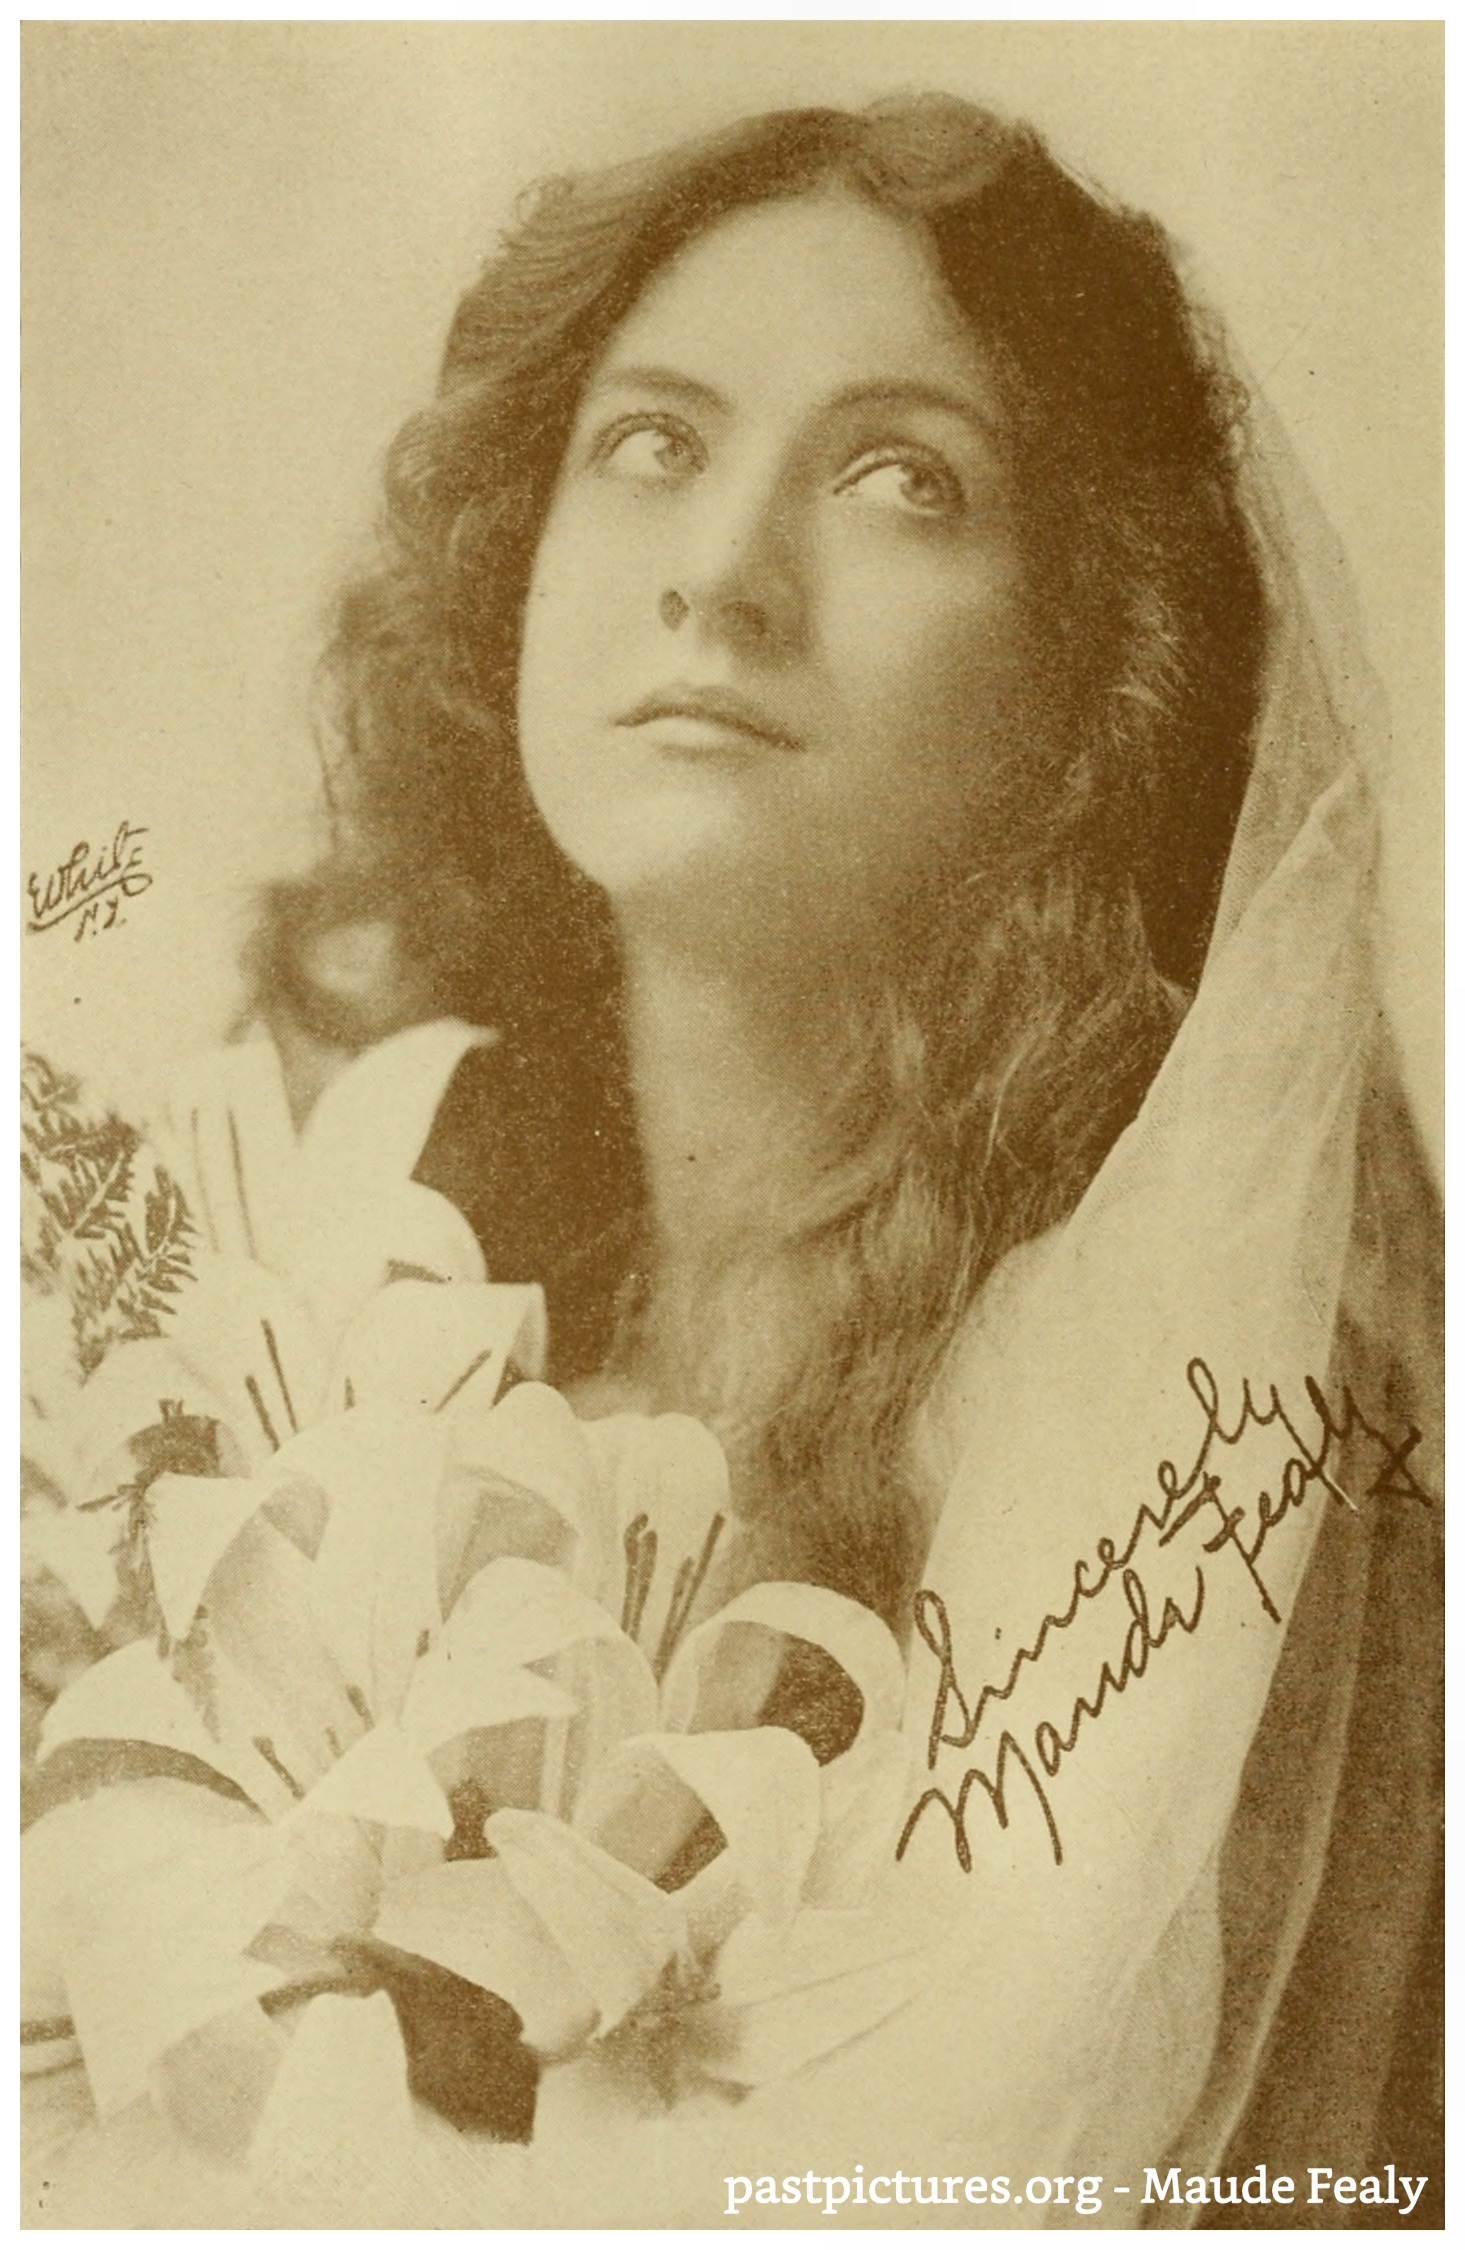 Maude Fealy (1883–1971) American actress